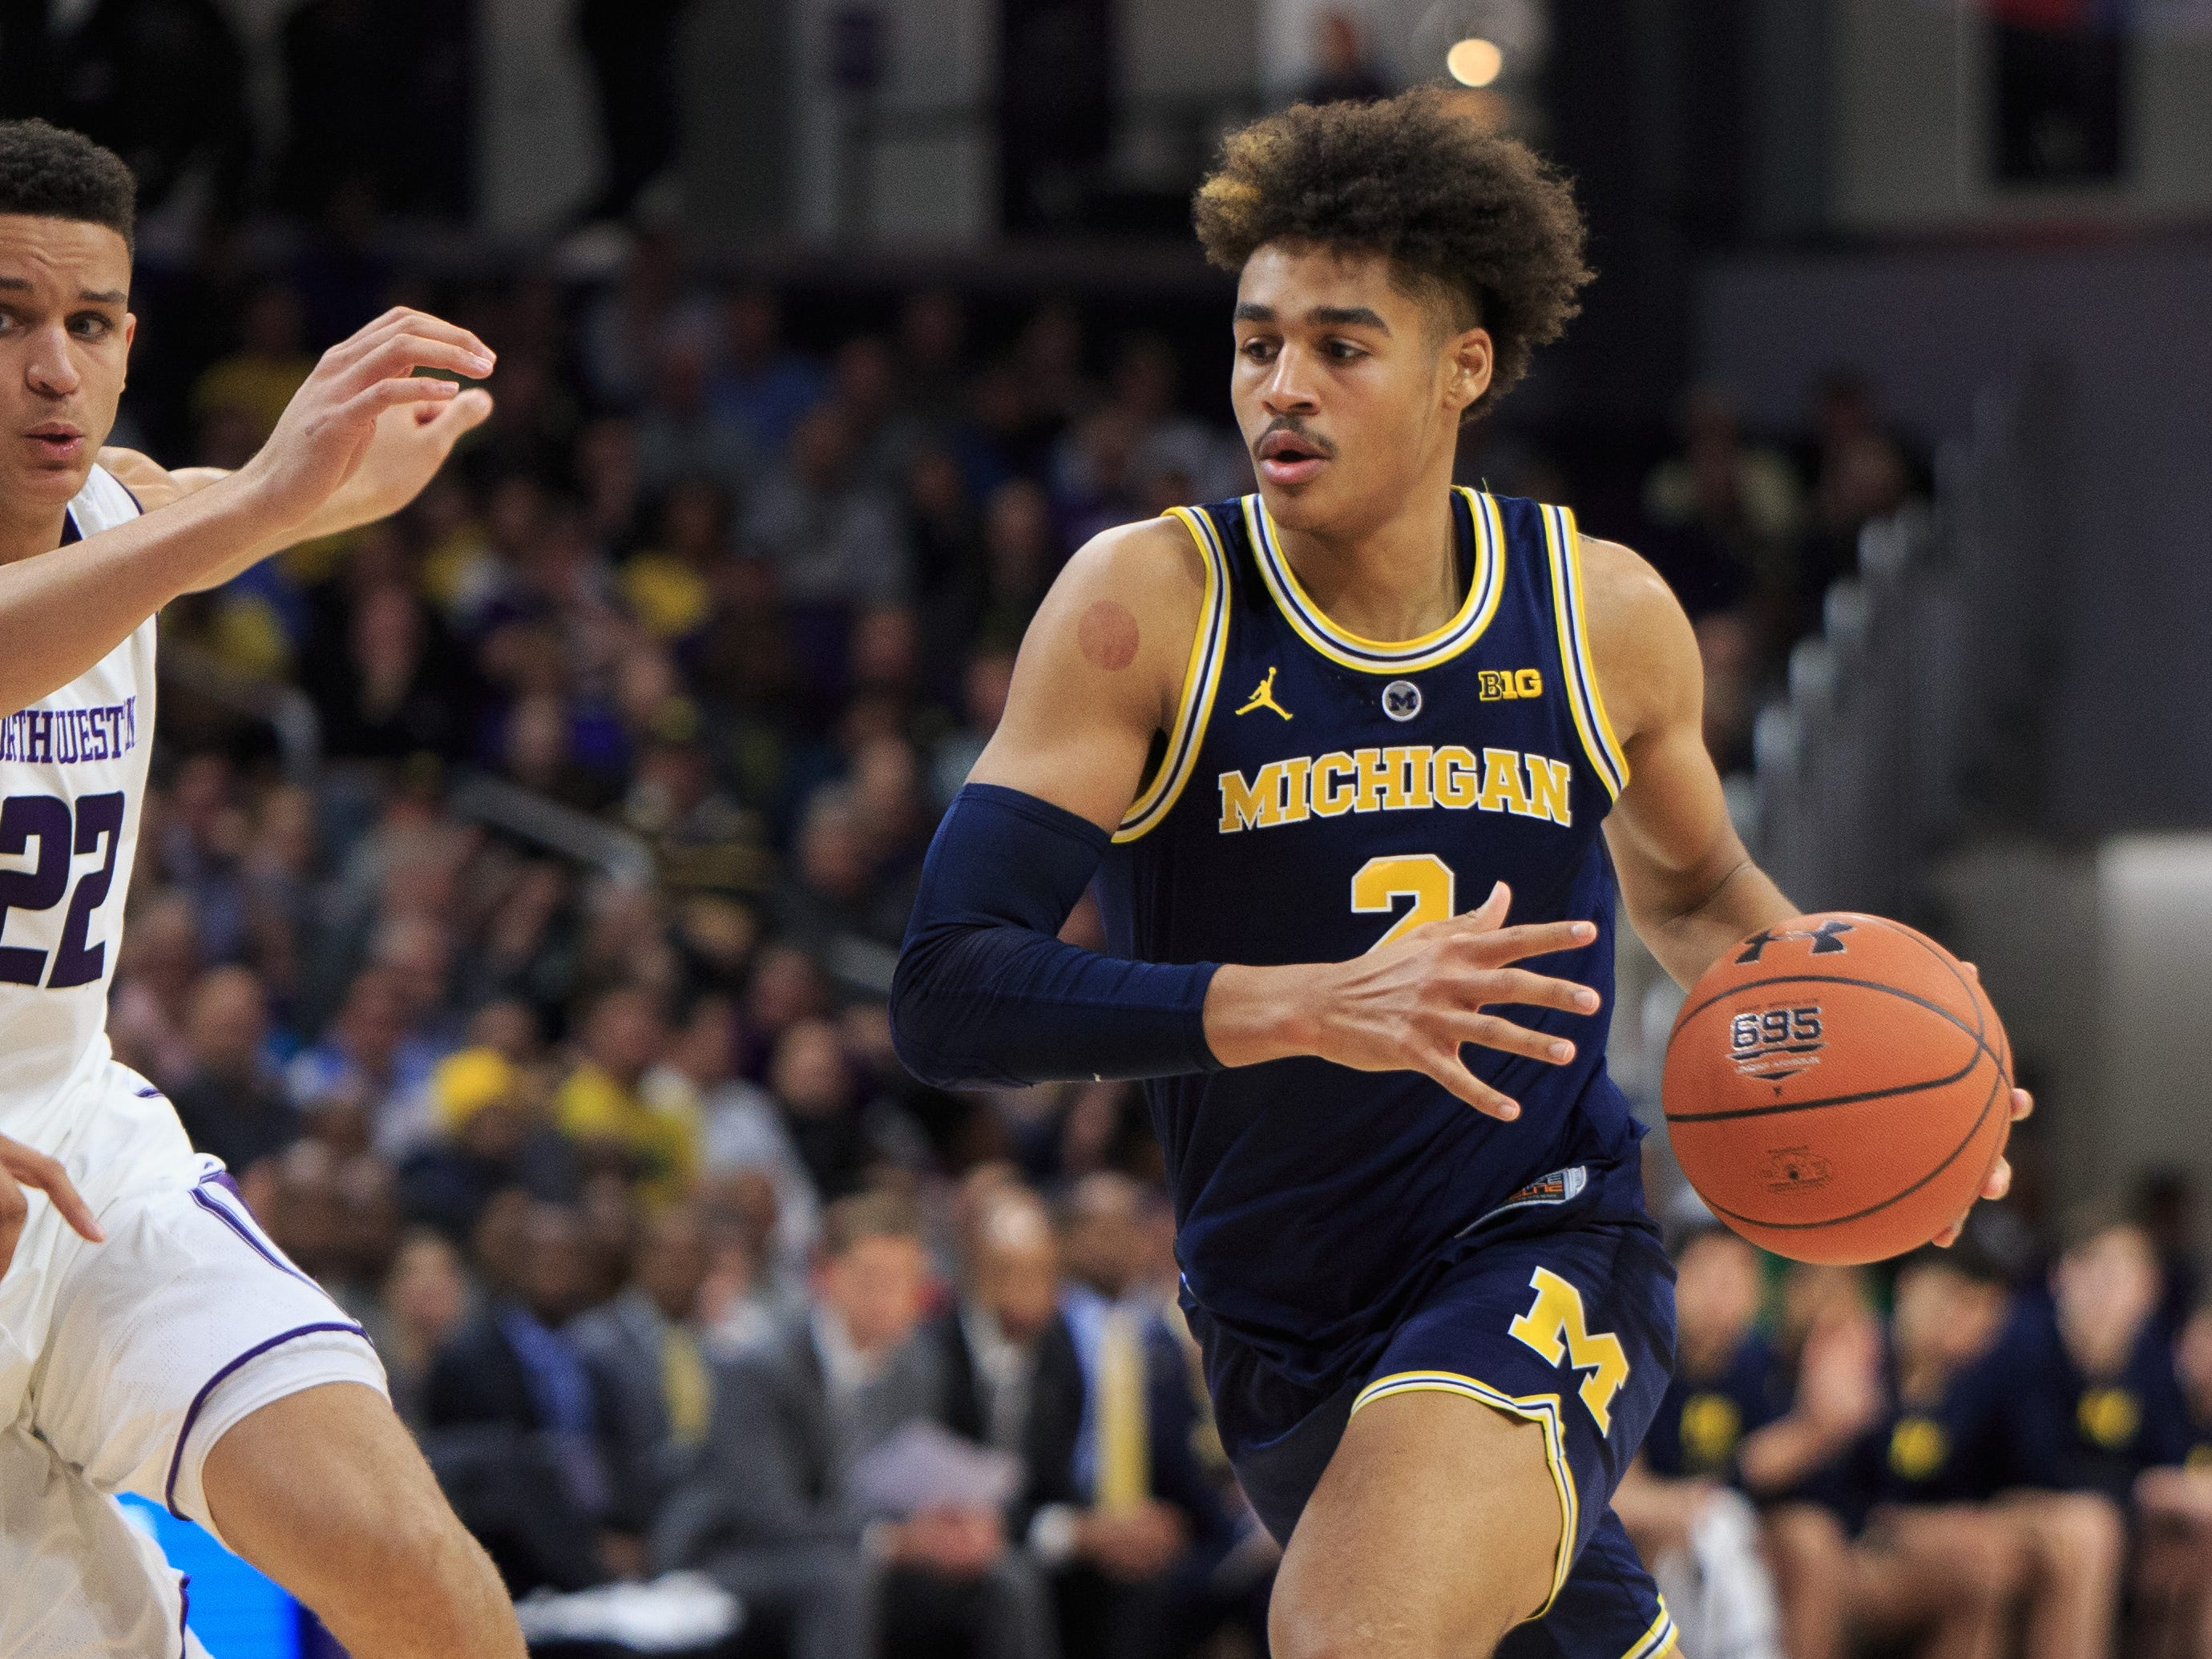 Michigan's Jordan Poole drives to the basket against Northwestern in the first half at Welsh-Ryan Arena on Dec. 4, 2018 in Evanston, Ill.